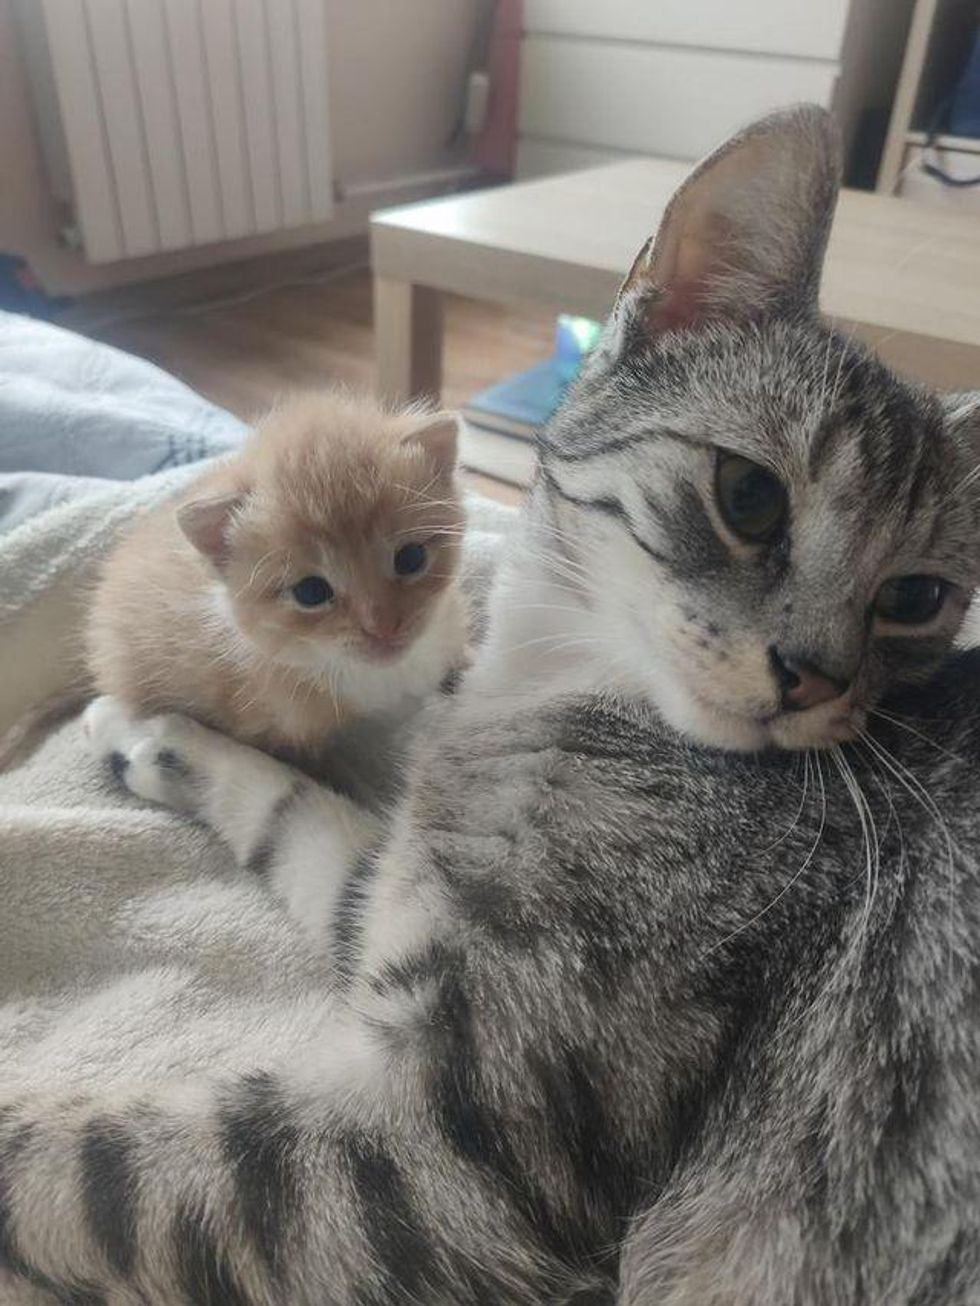 Kitten Cries His Way into the Arms of Affectionate Cat After He Was Found Under Car in a Box